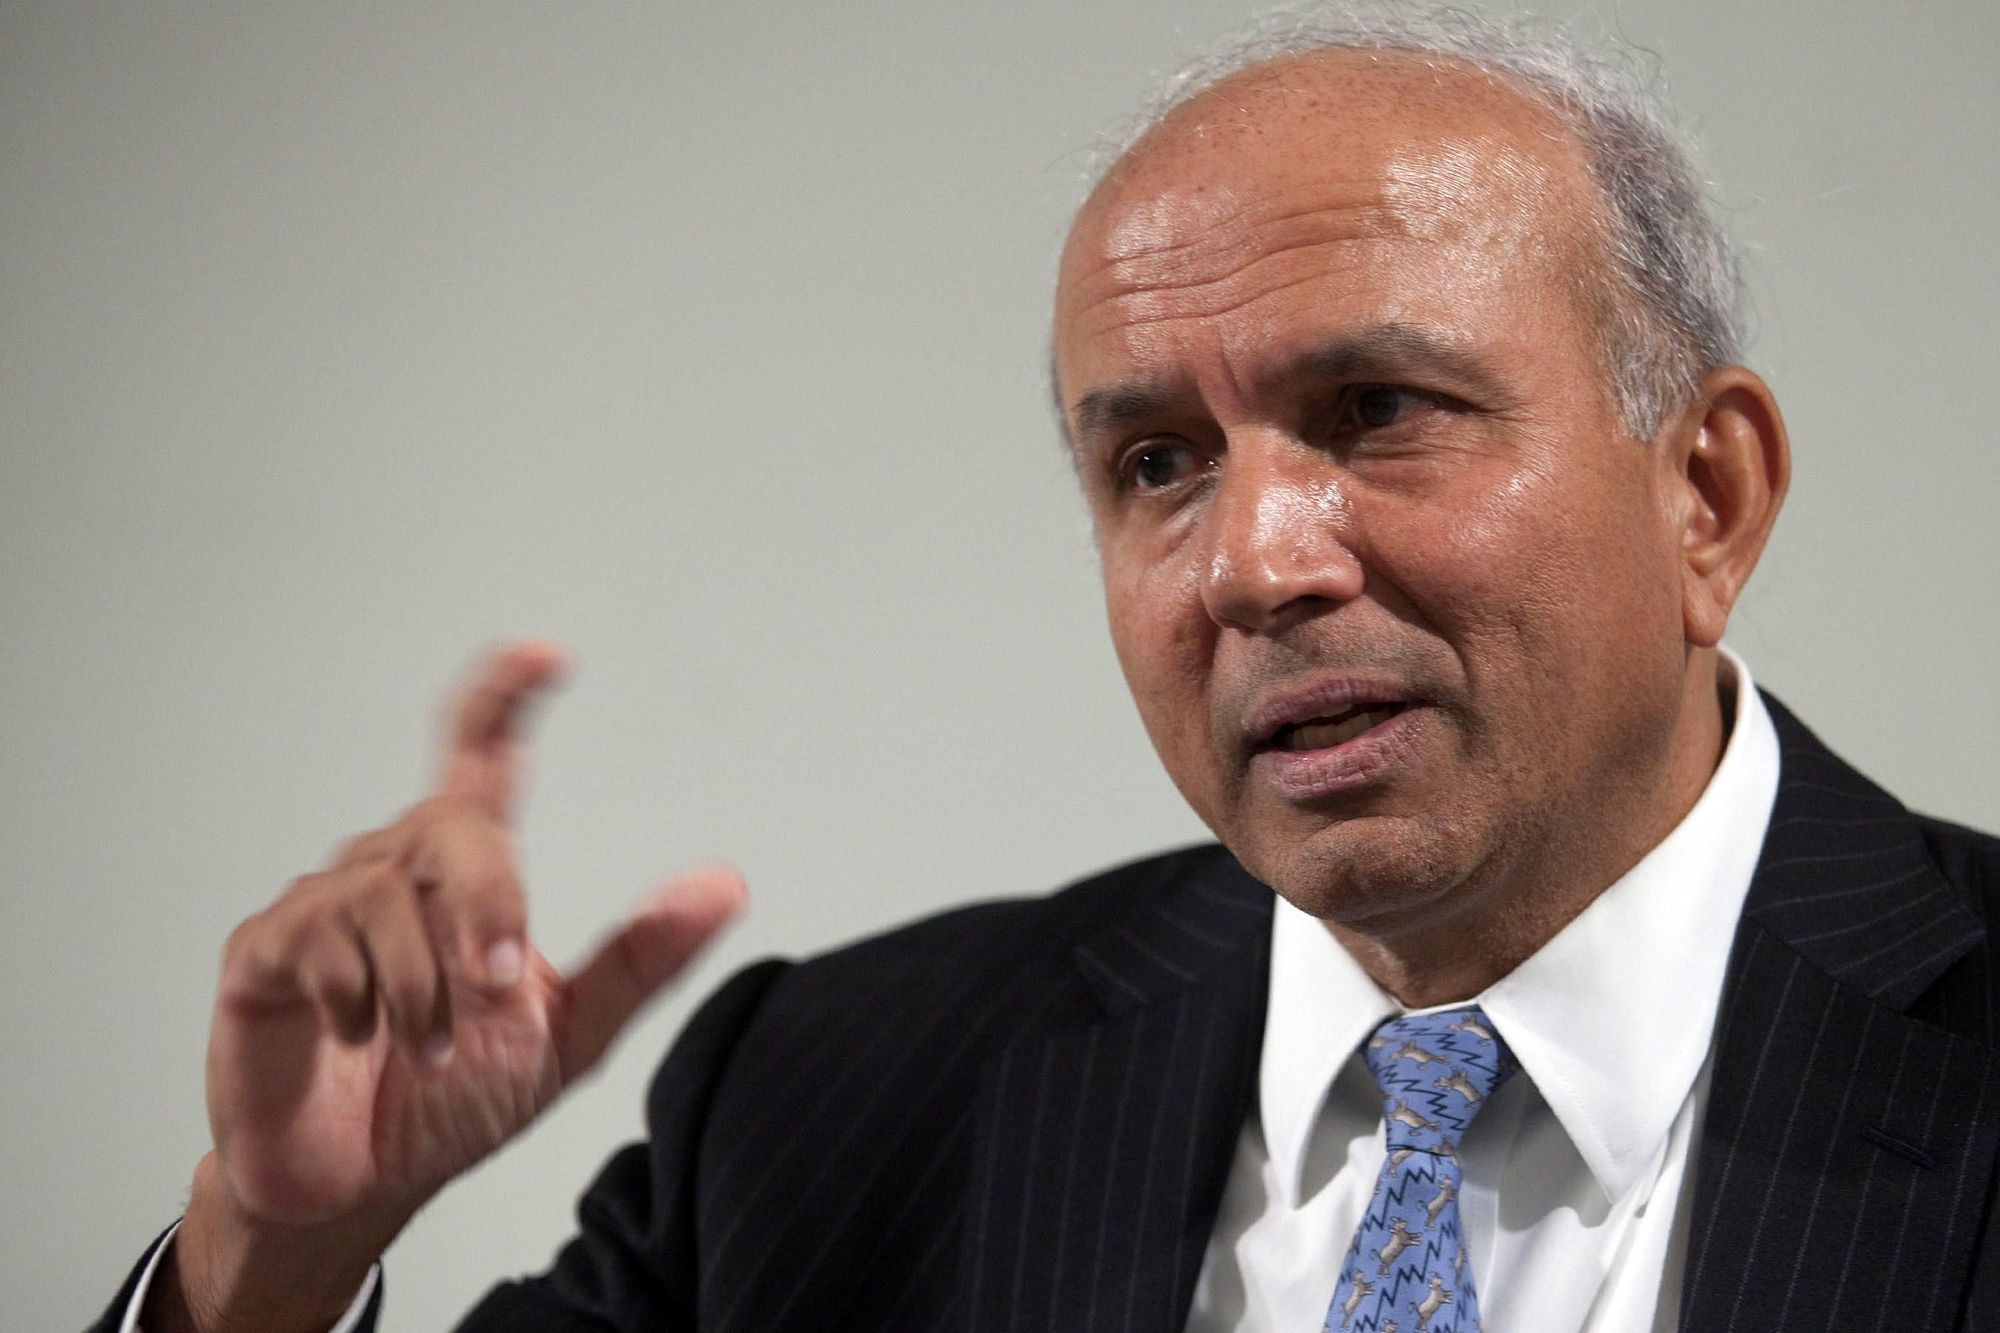 Prem Watsa, chief executive officer of Fairfax Financial Holdings Ltd., speaks at a news conference following the company's annual meeting in Toronto, Ontario, Canada, on Thursday, April 22, 2010. Photographer: Norm Betts/Bloomberg